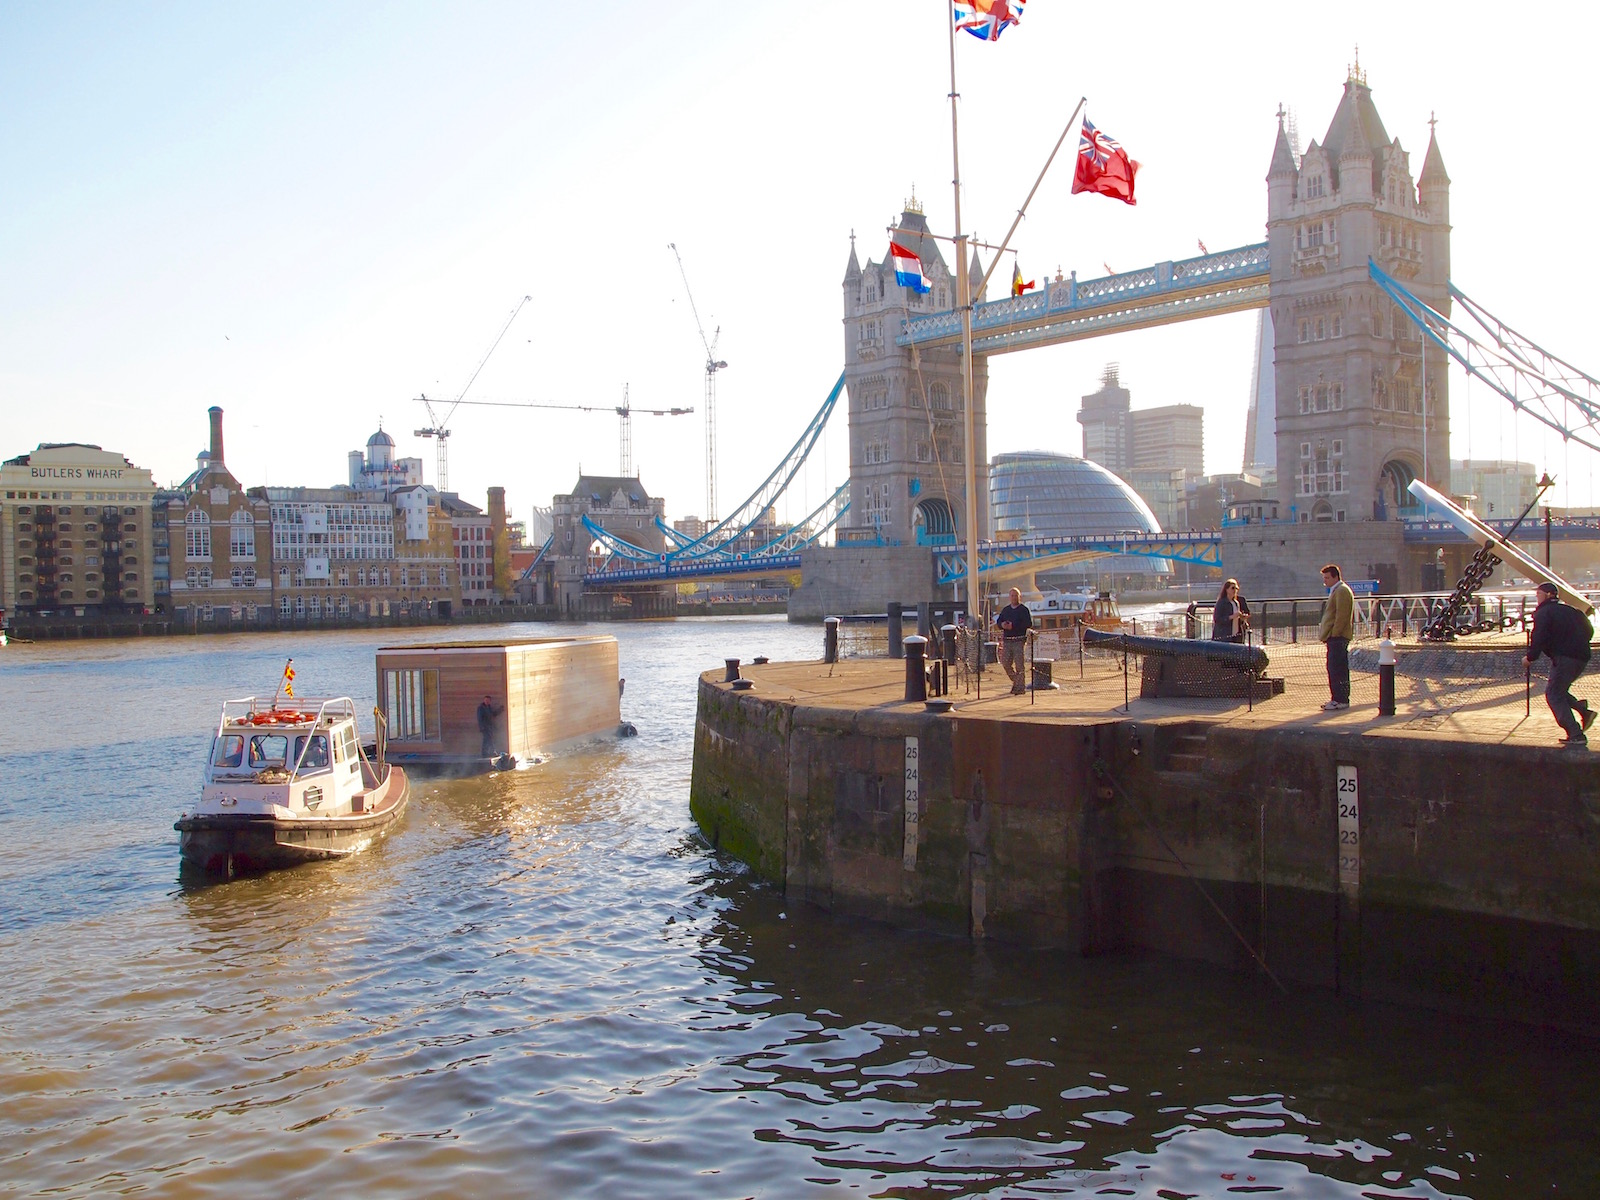 Eco floating homes at Tower Bridge